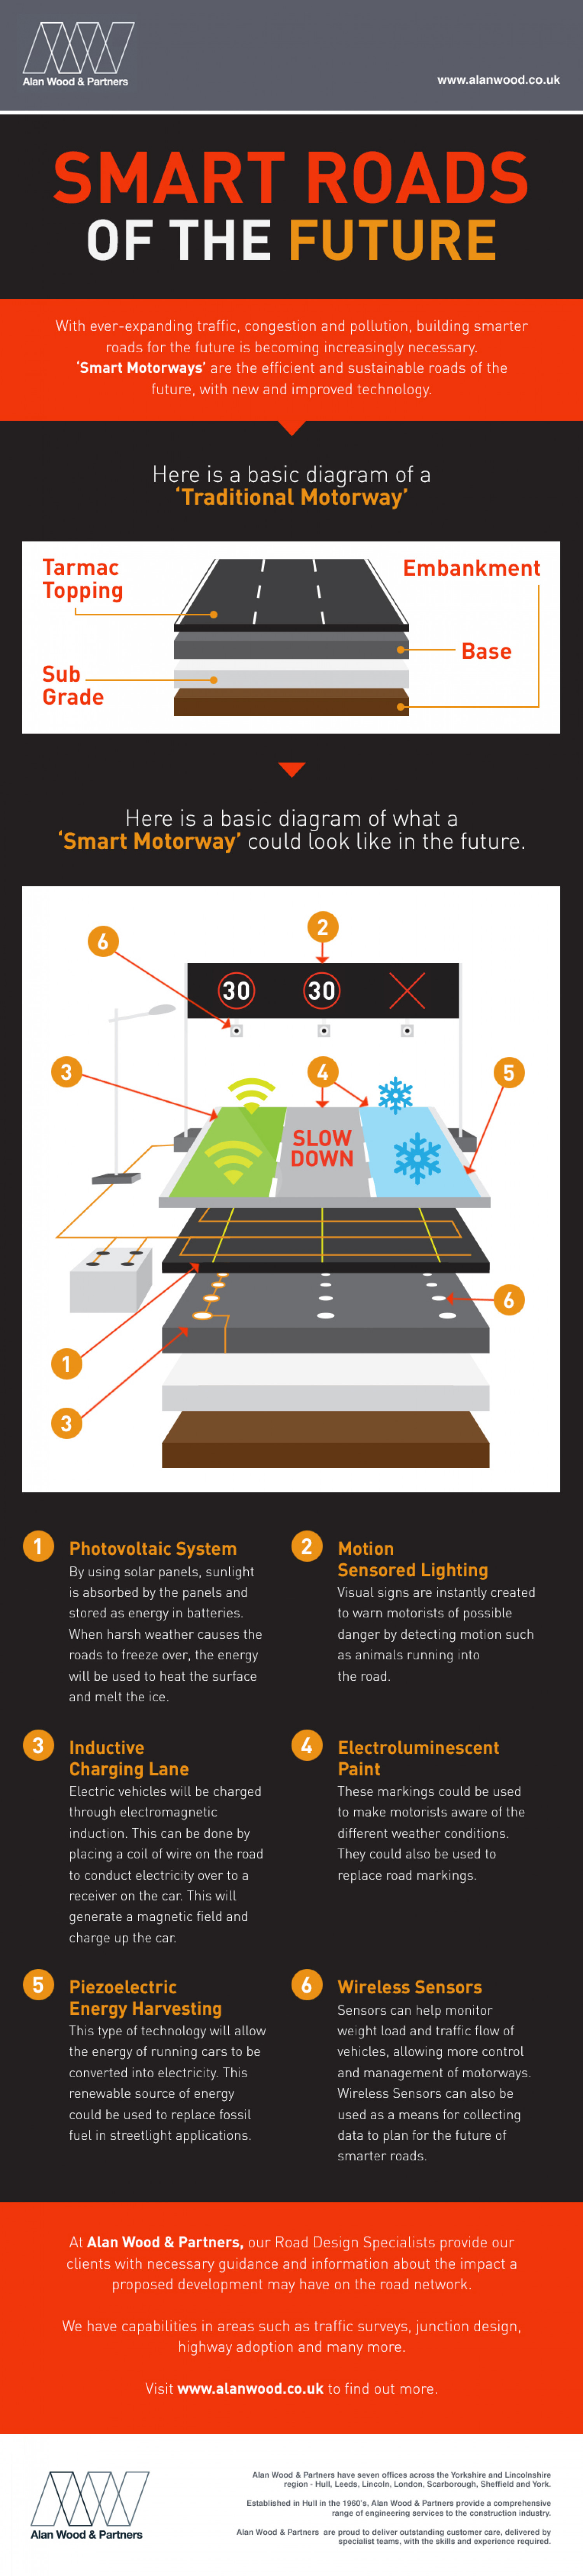 Smart Roads of the Future Infographic